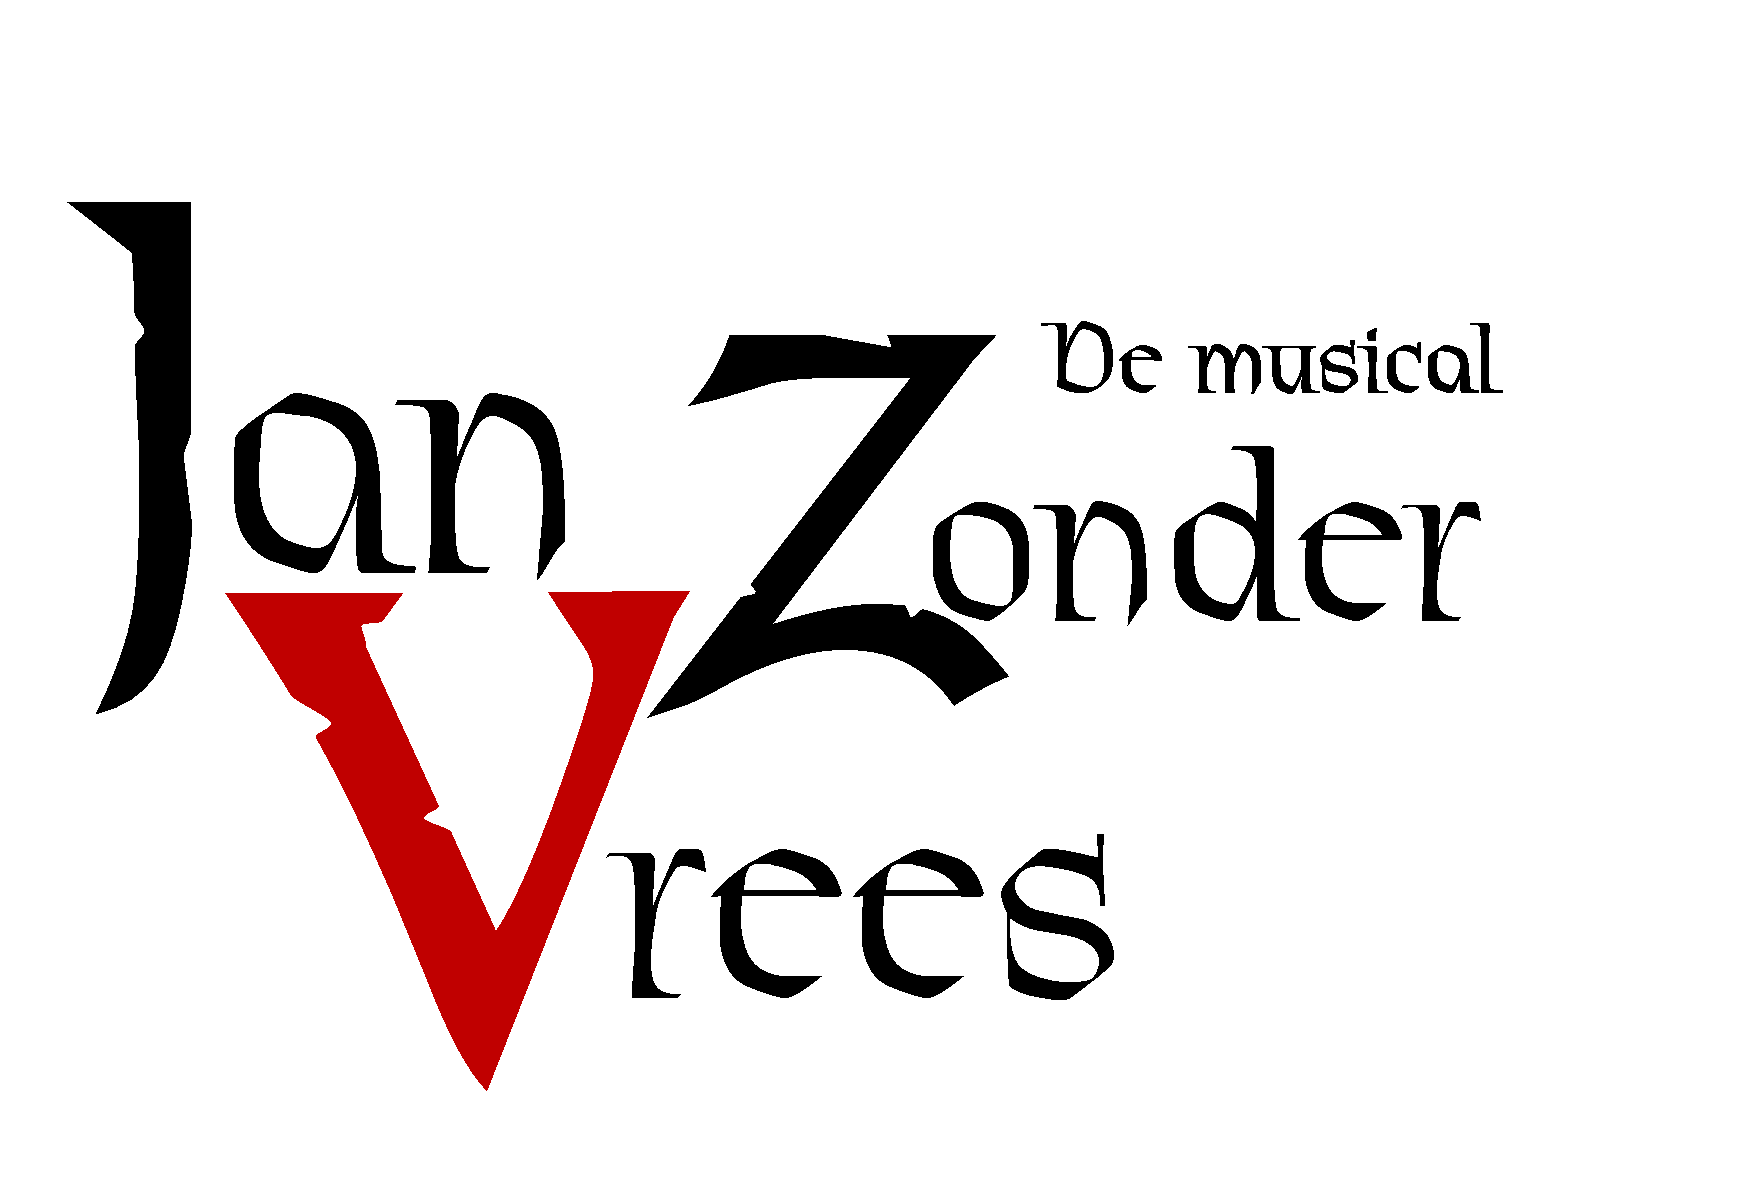 Jan zonder Vrees de musical